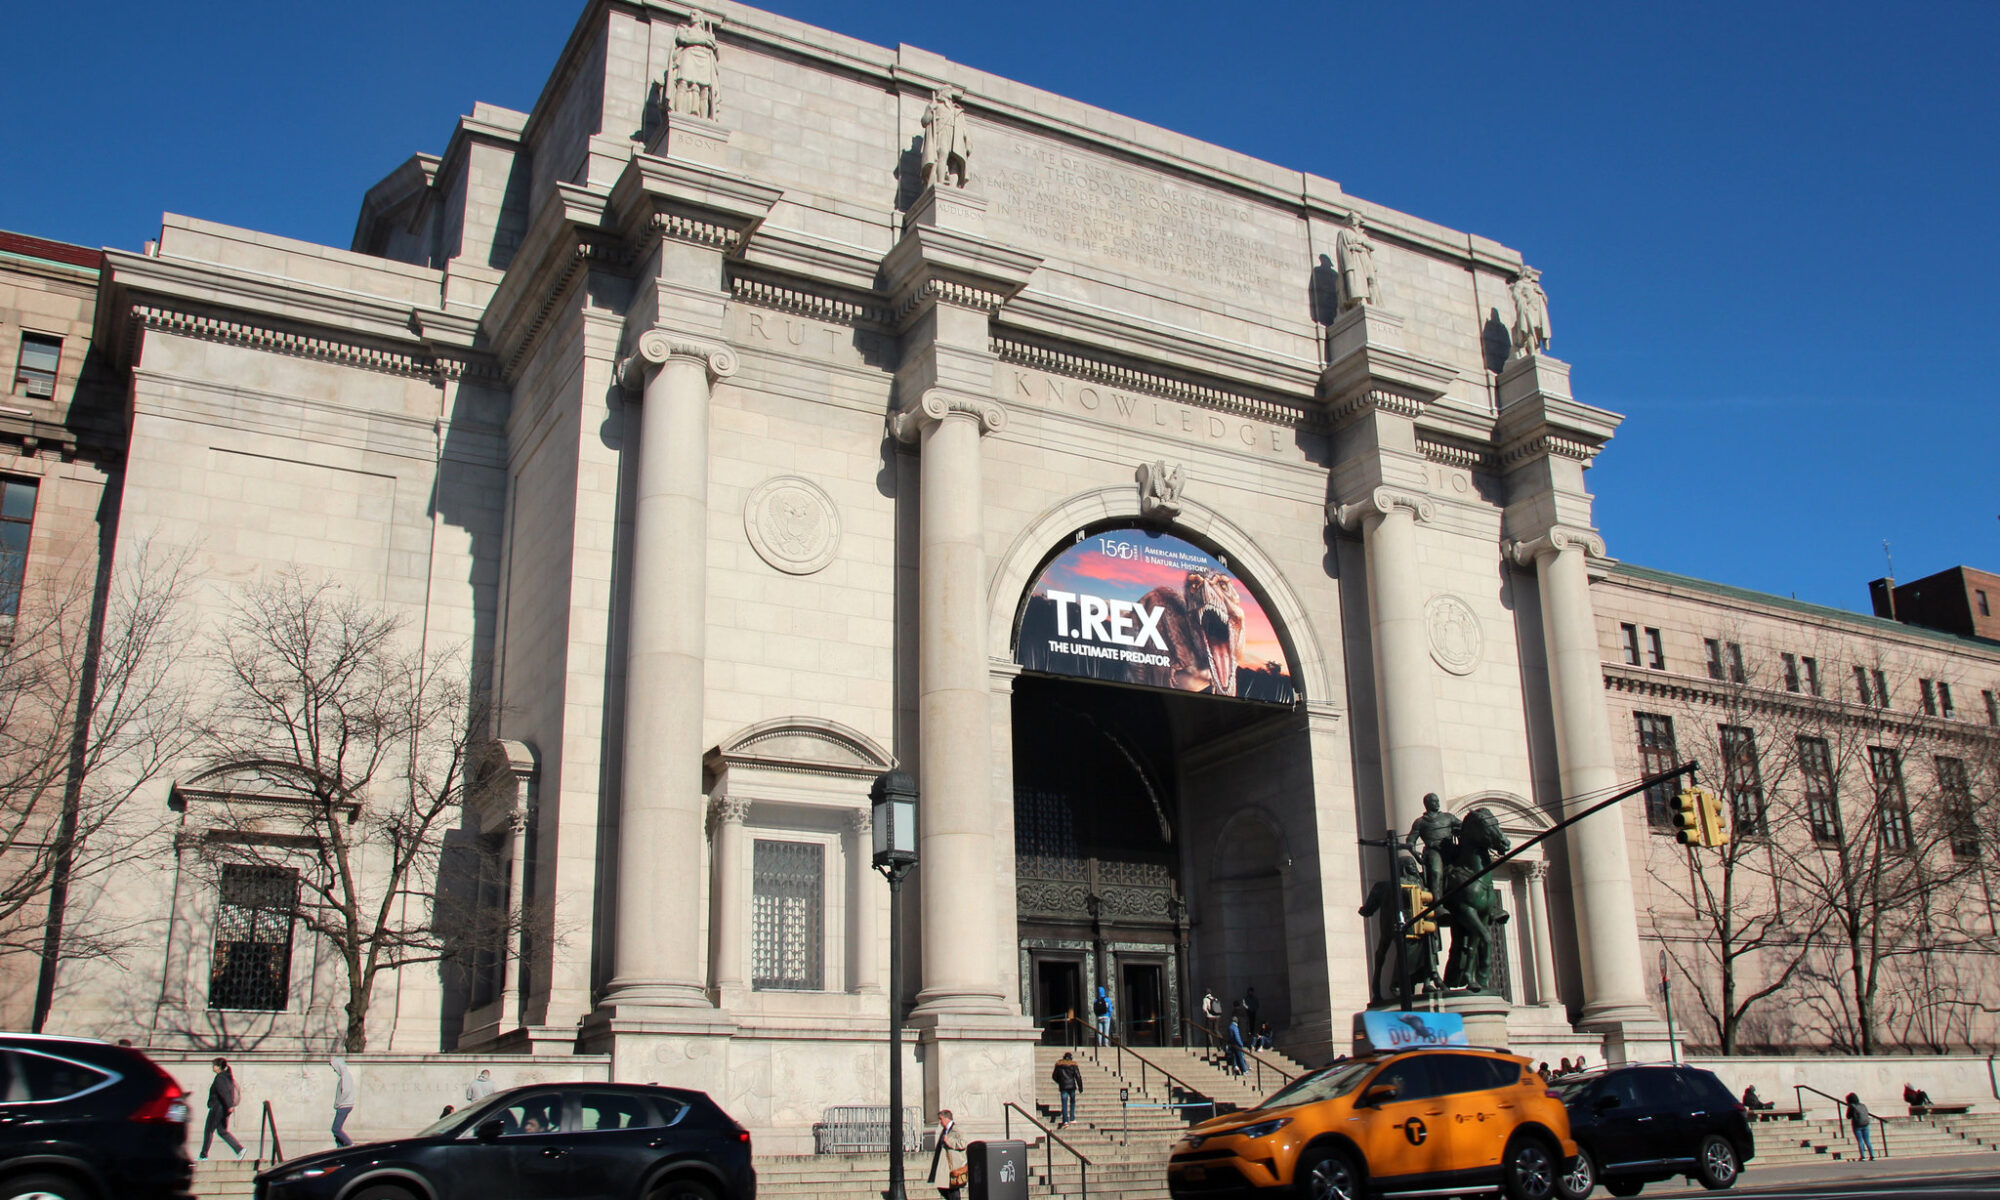 Entrance to the Museum of Natural History